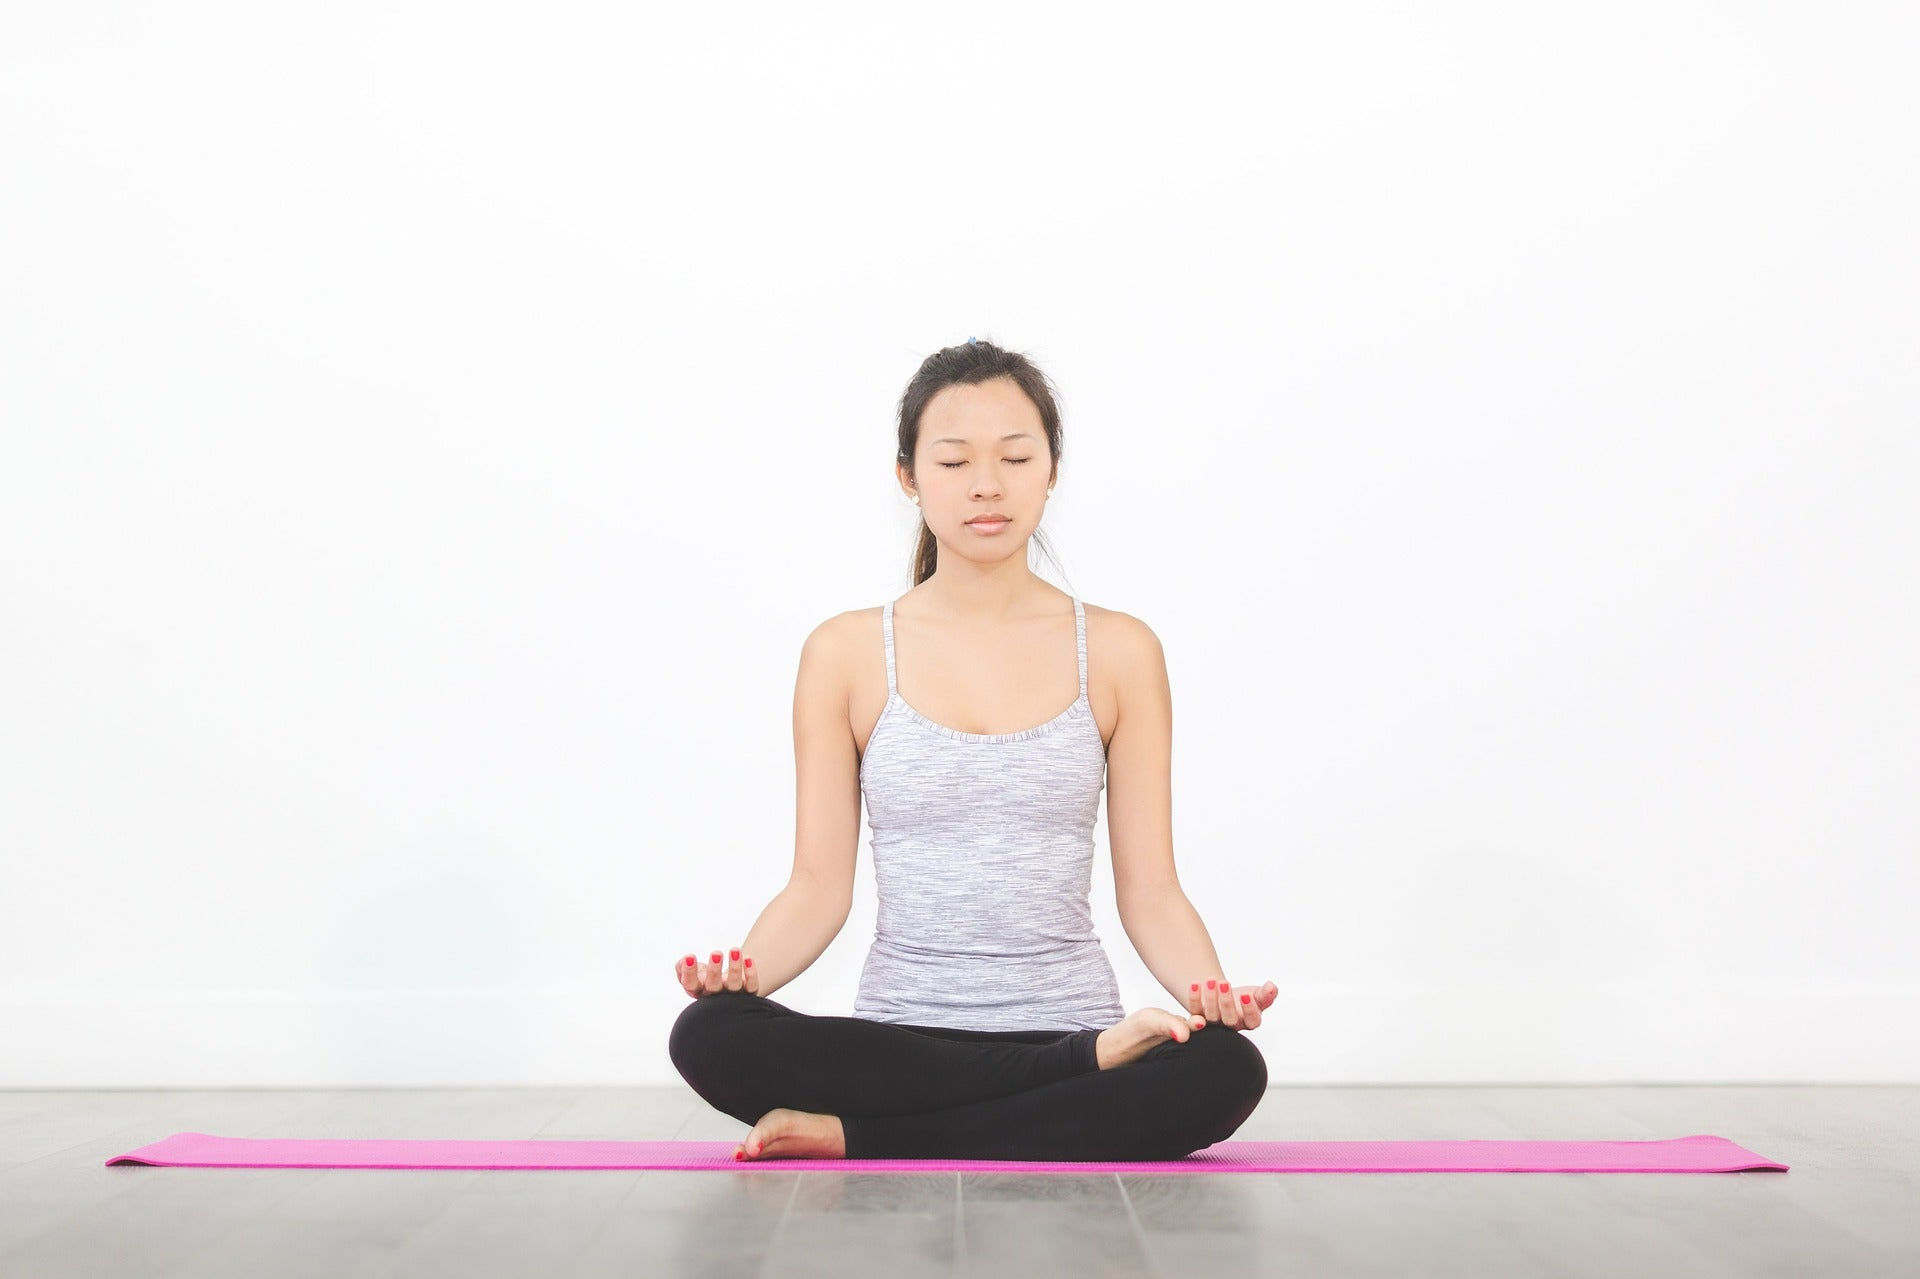 Meditation and breathing techniques can help reduce the anxiety and stress related to the coronavirus